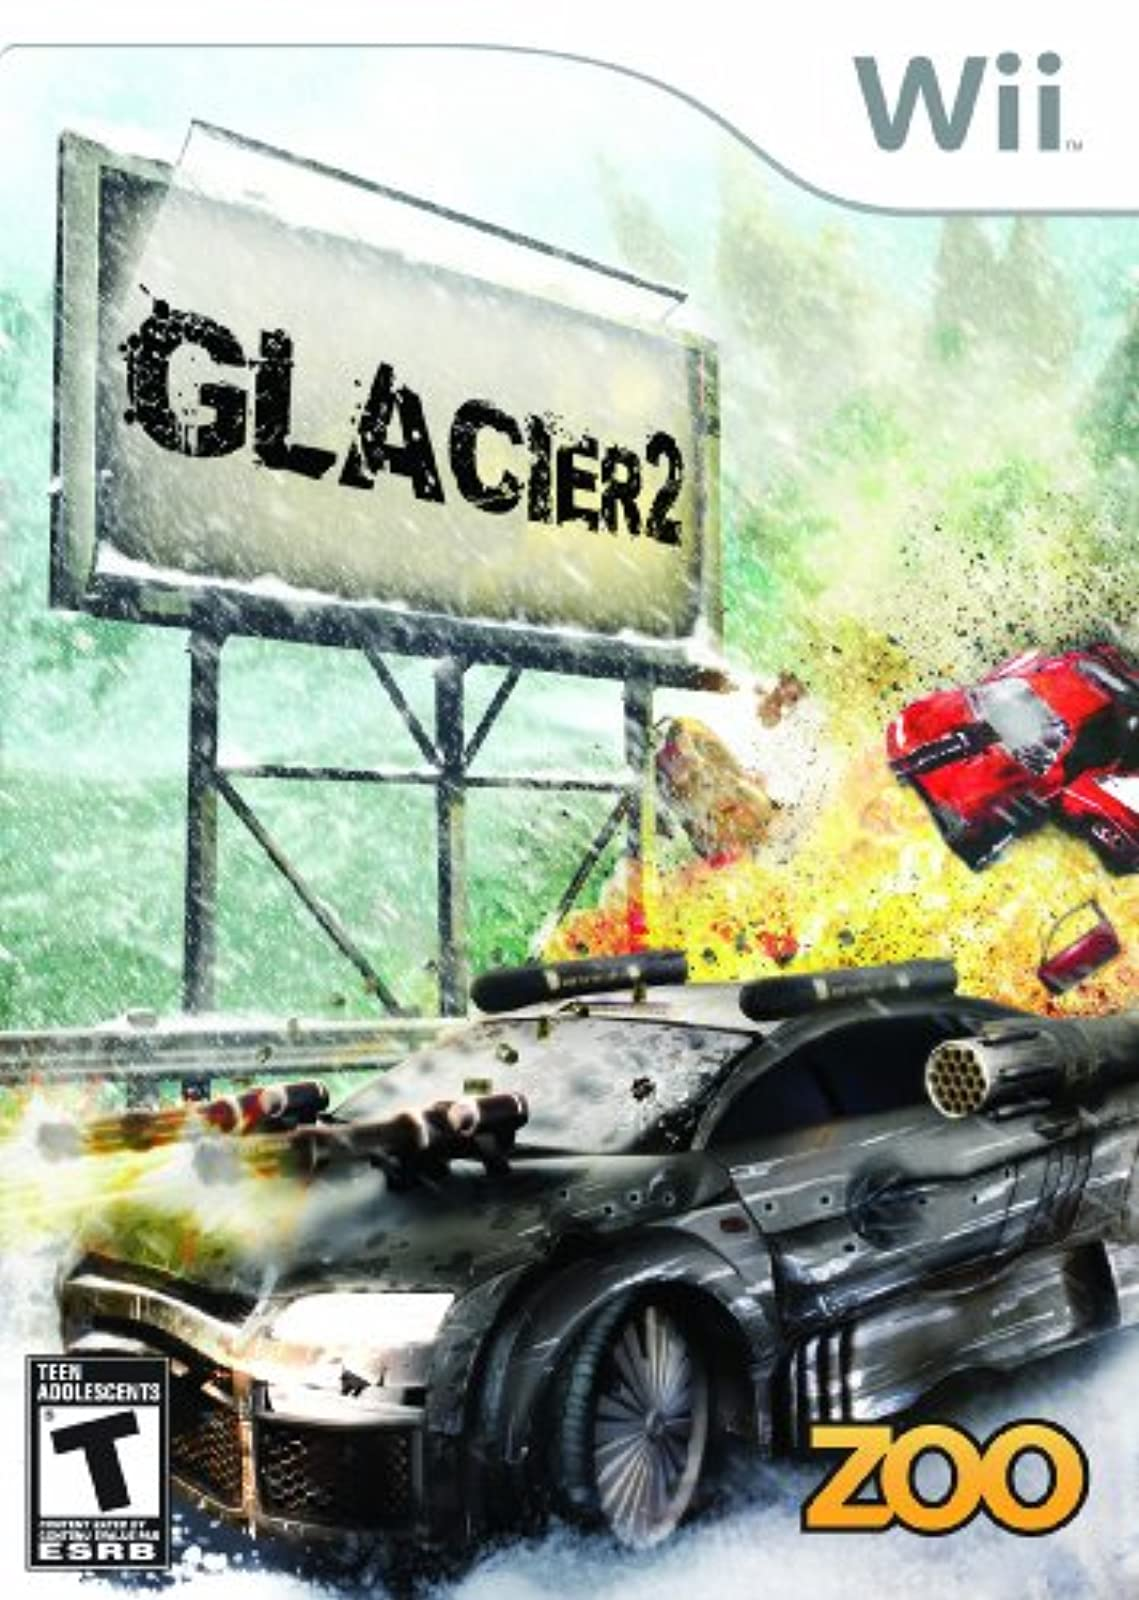 Glacier 2 For Wii And Wii U